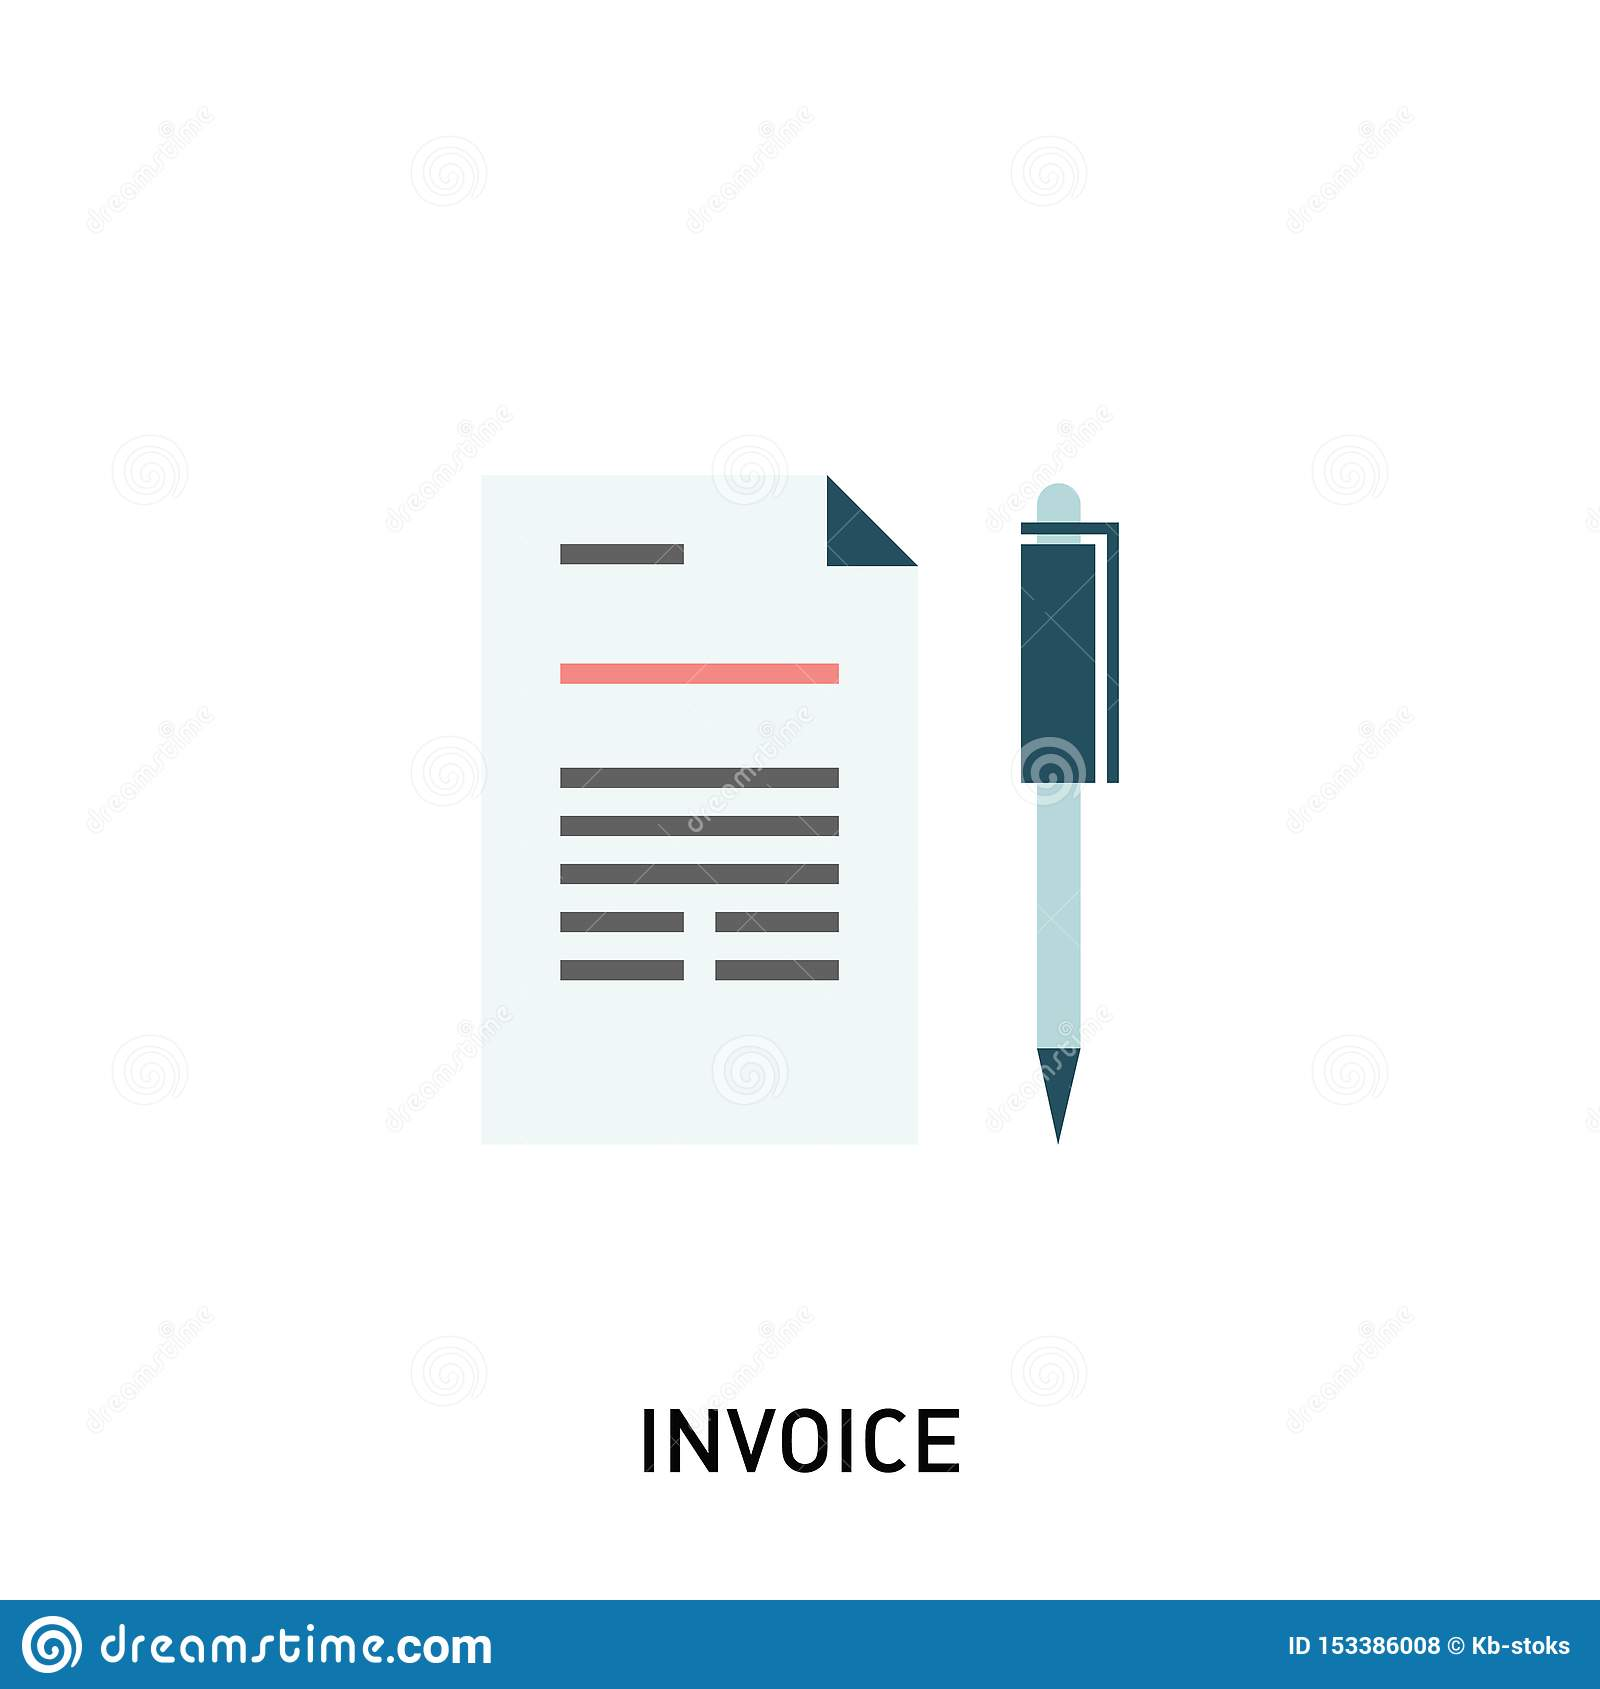 Invoice icon. Payment and billing invoices, business or financial operations sign.